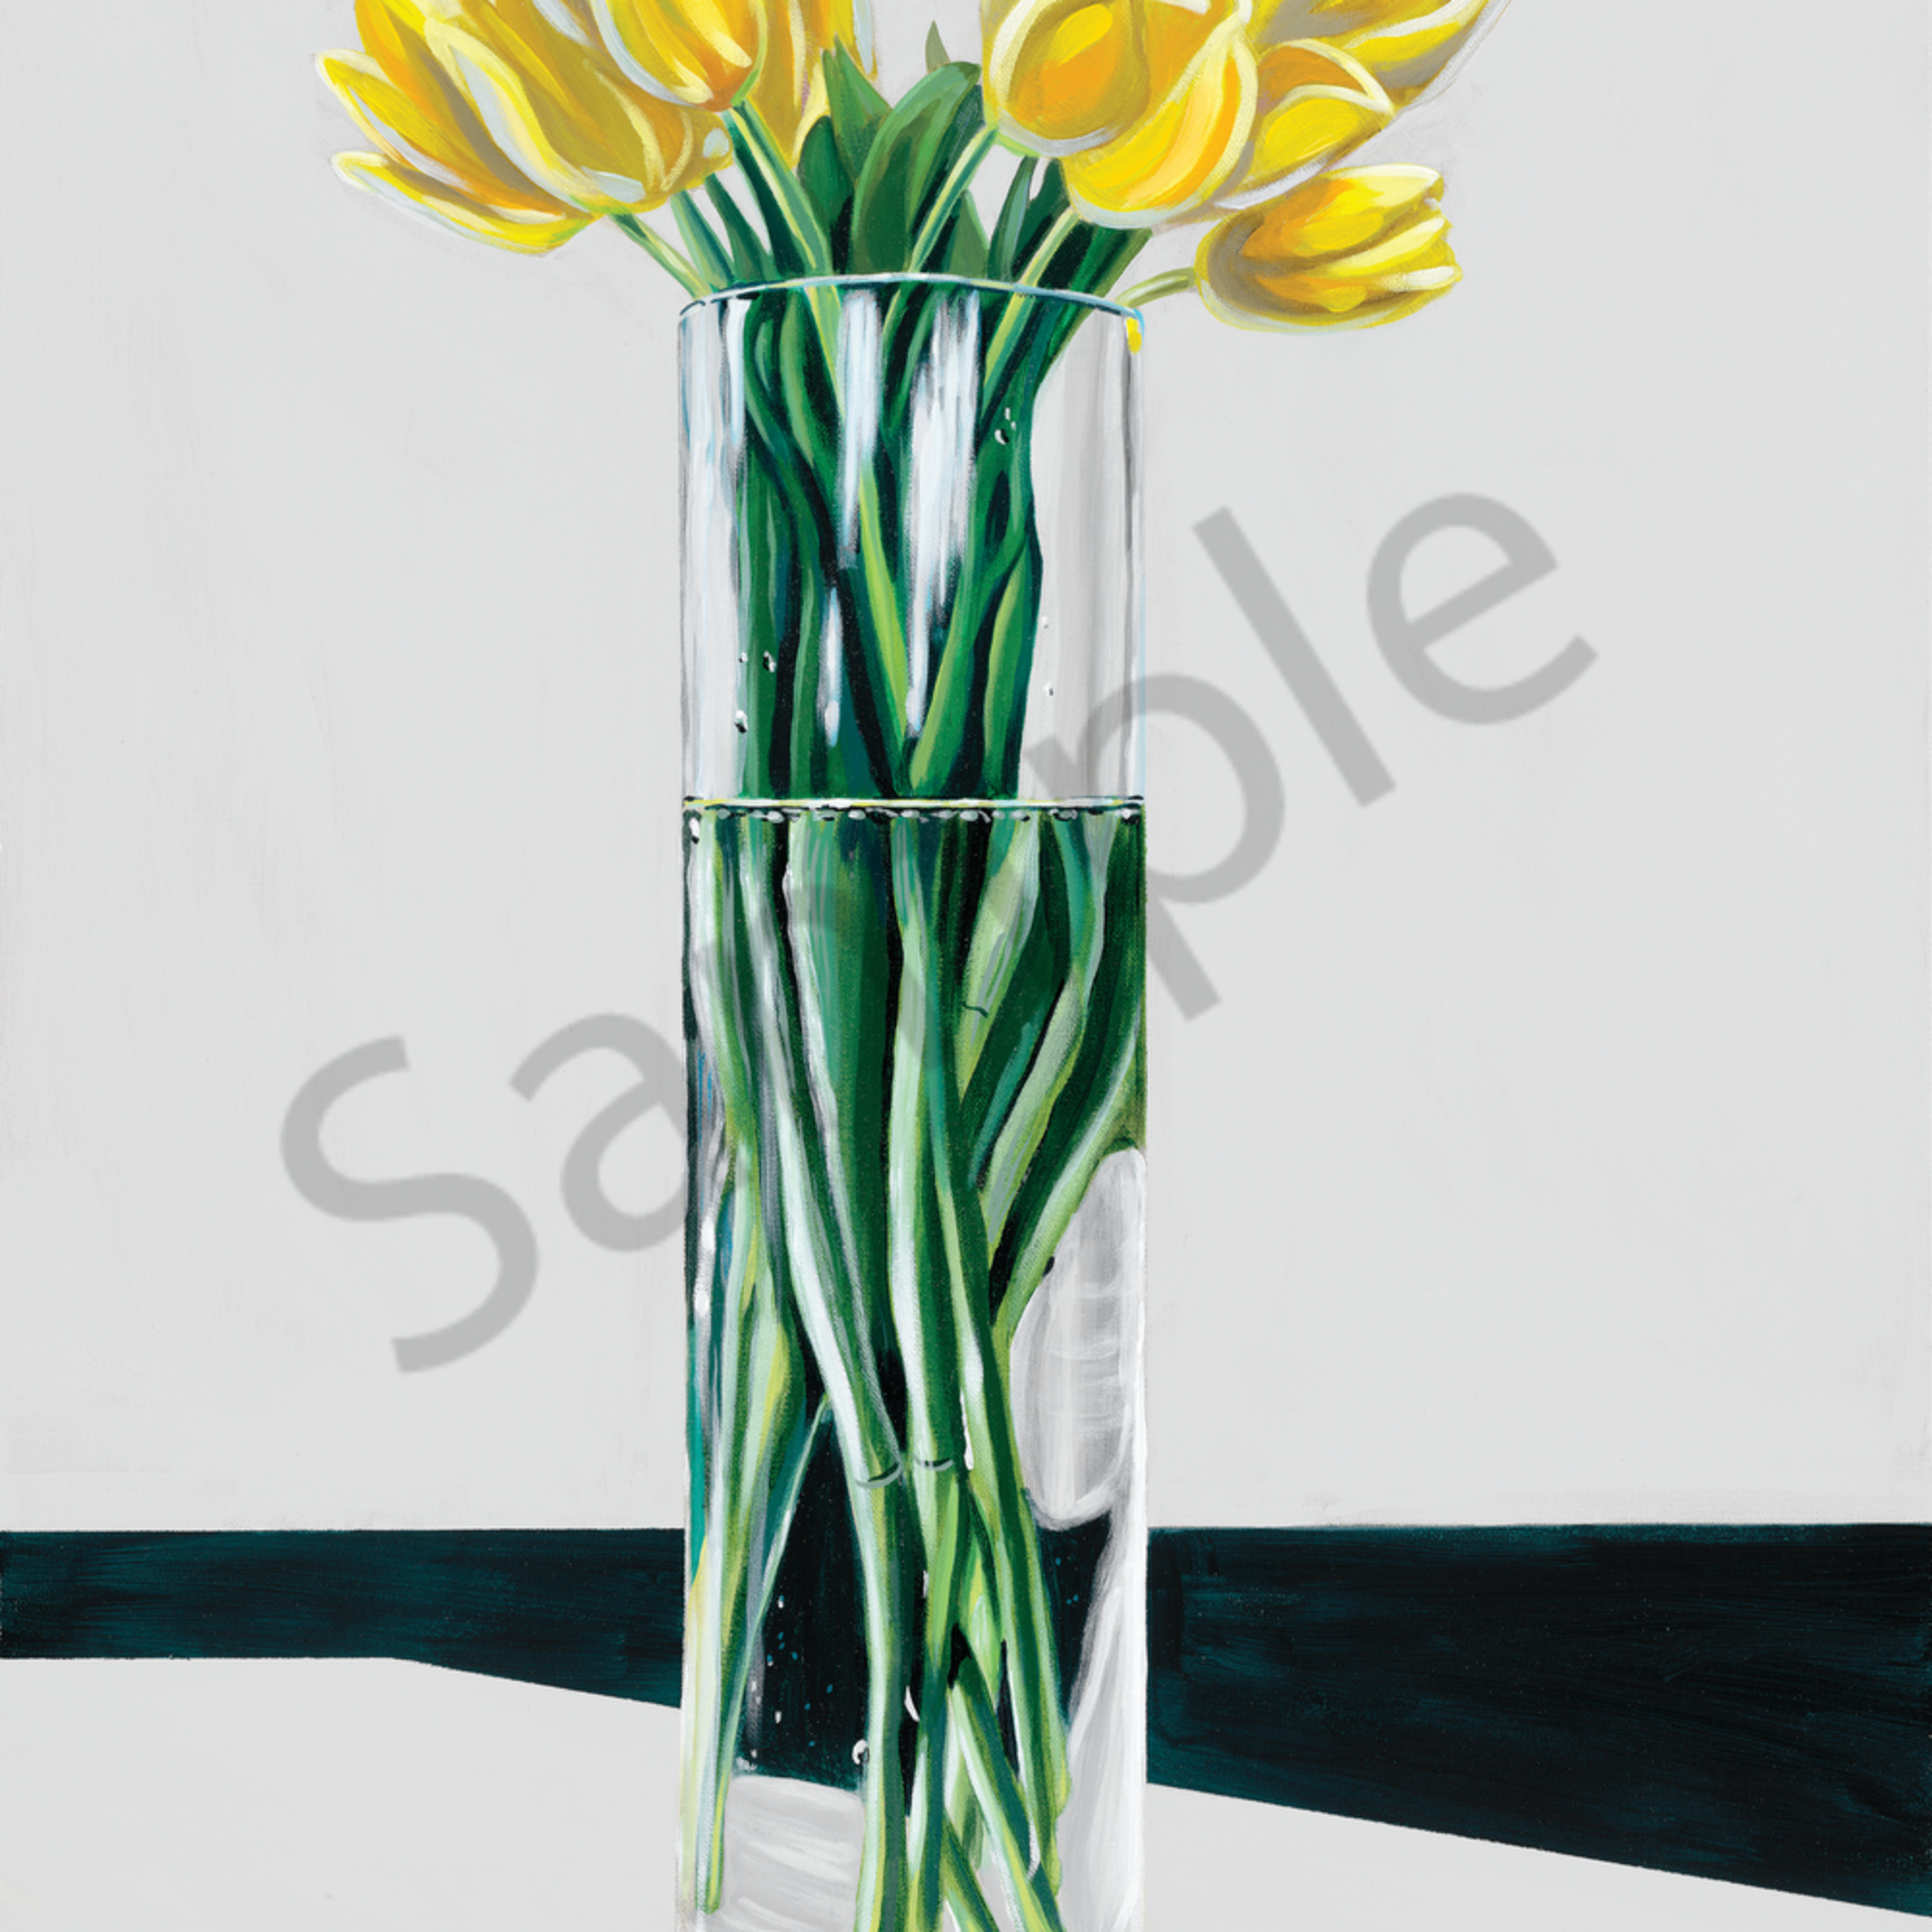 Asf   yellow tulips wpgvmv